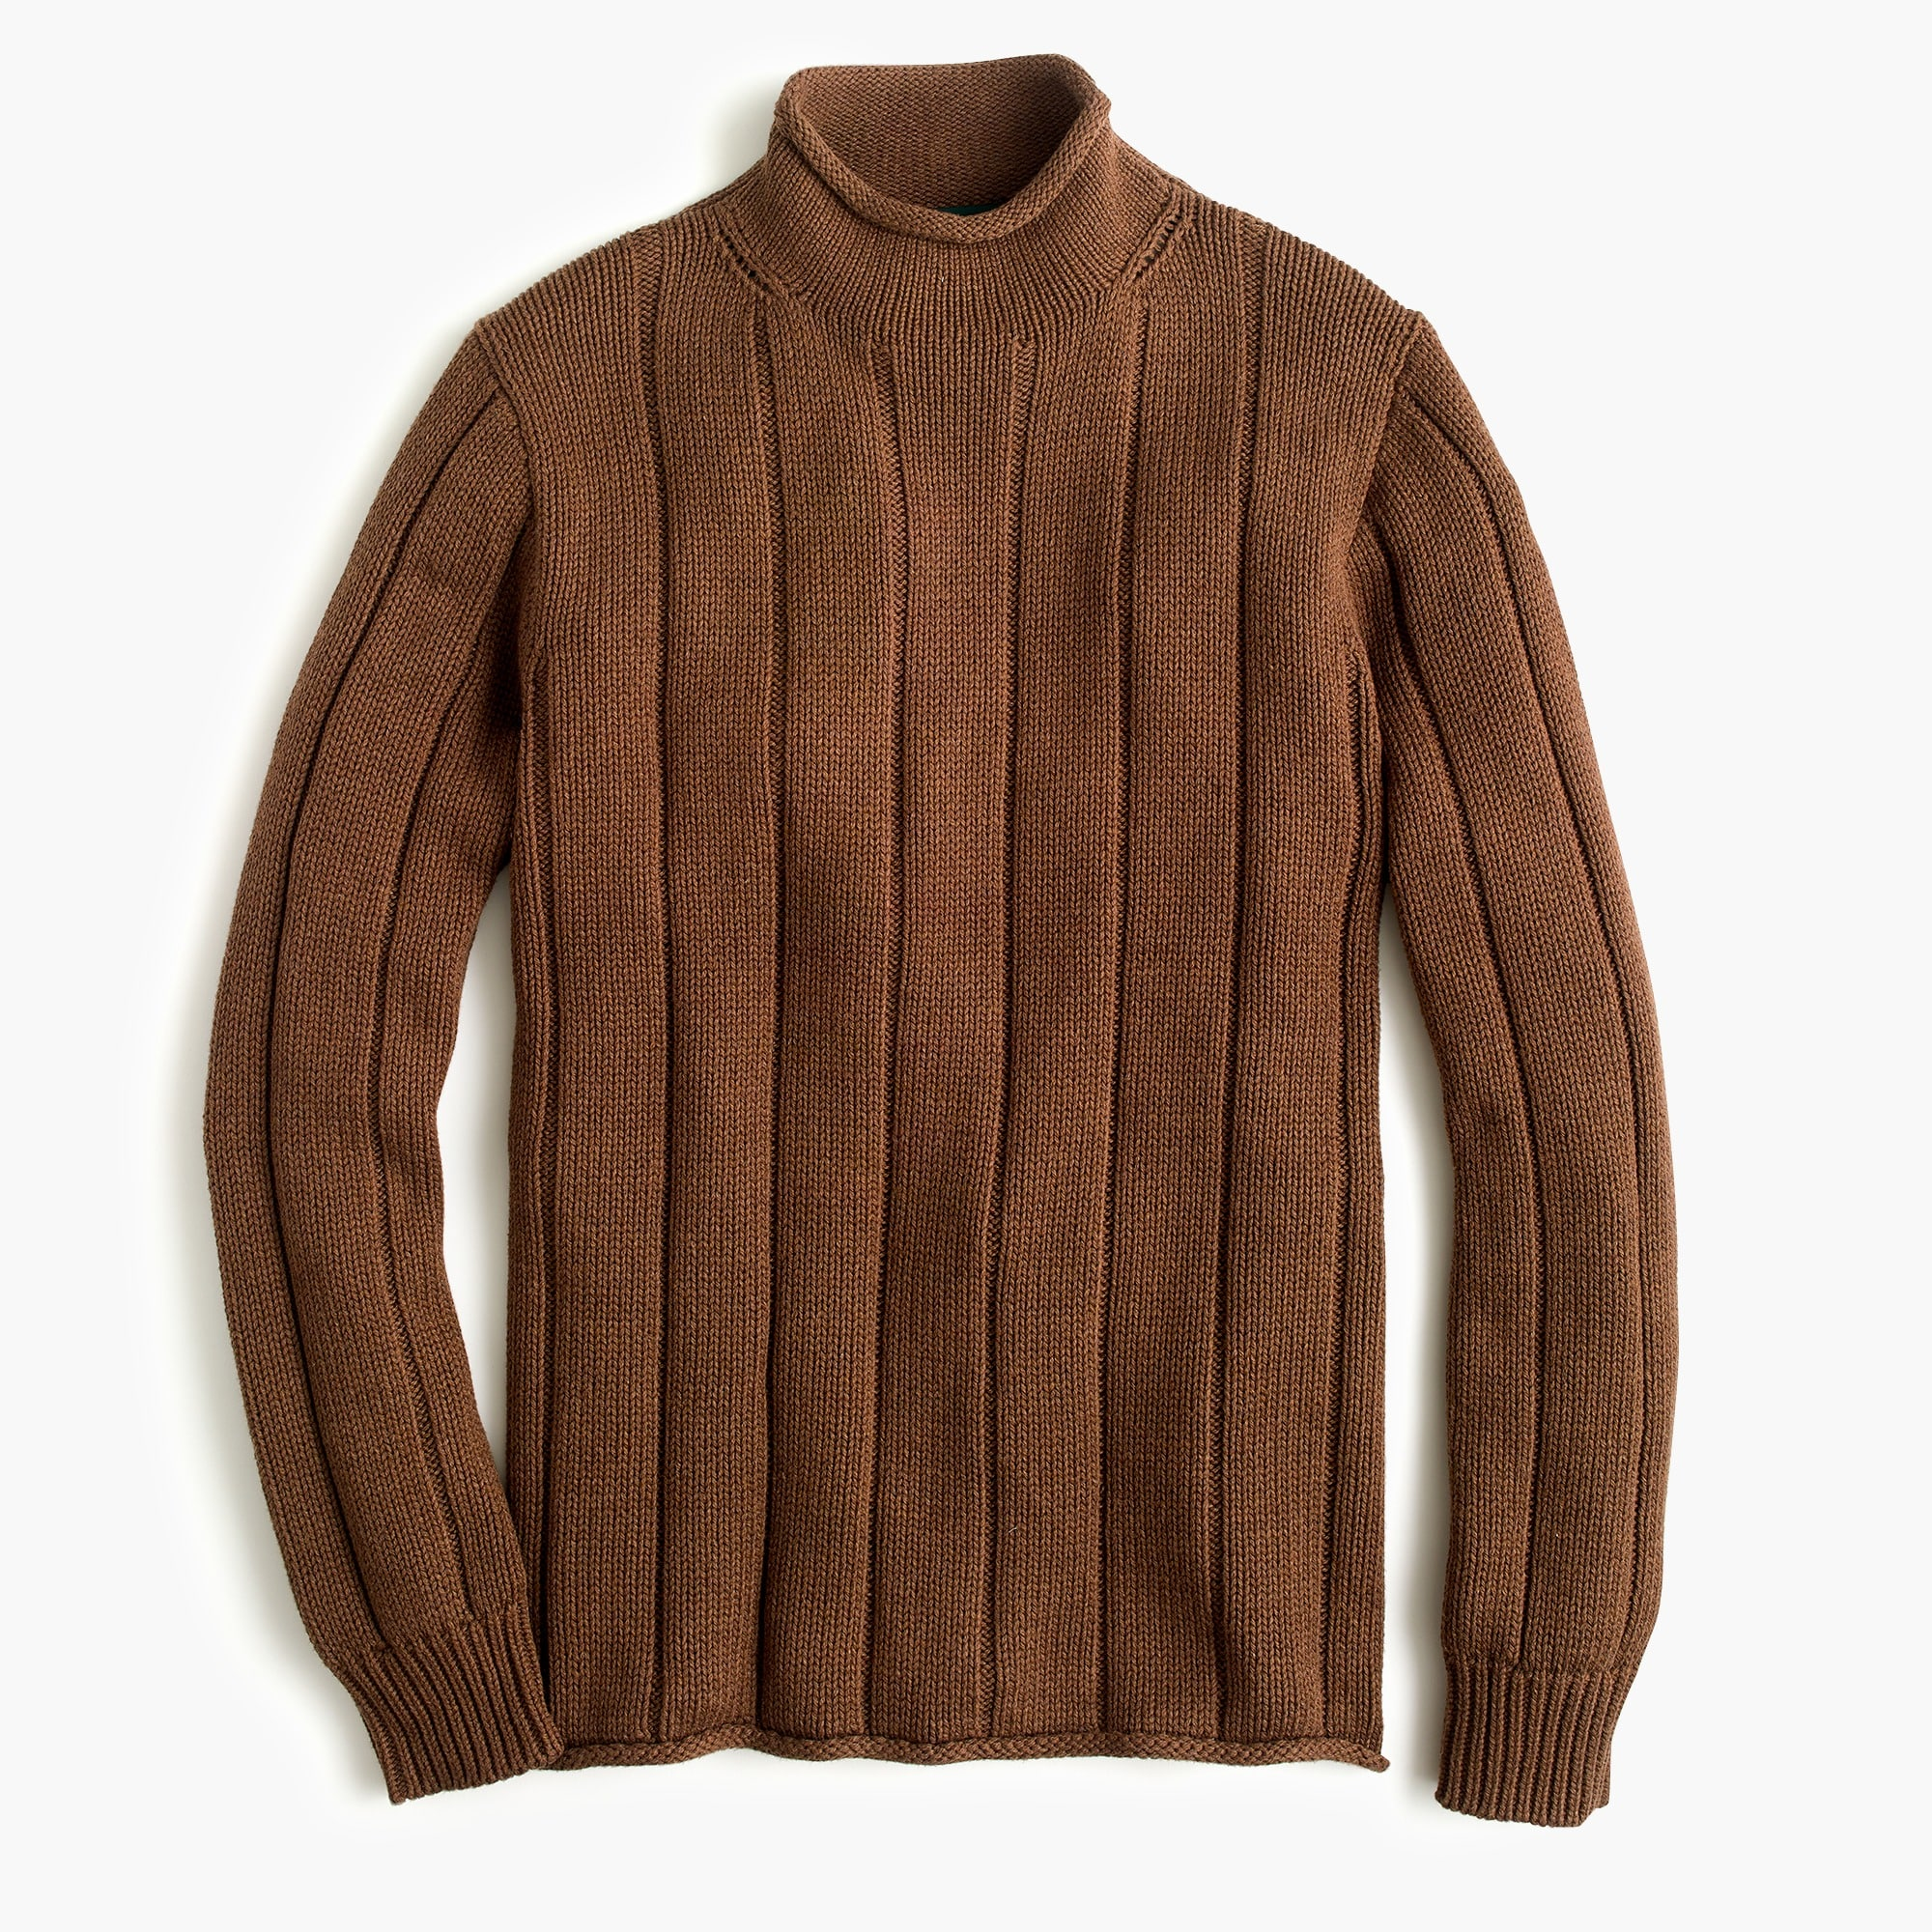 Image 1 for 1988 rollneck™ sweater in ribbed cotton